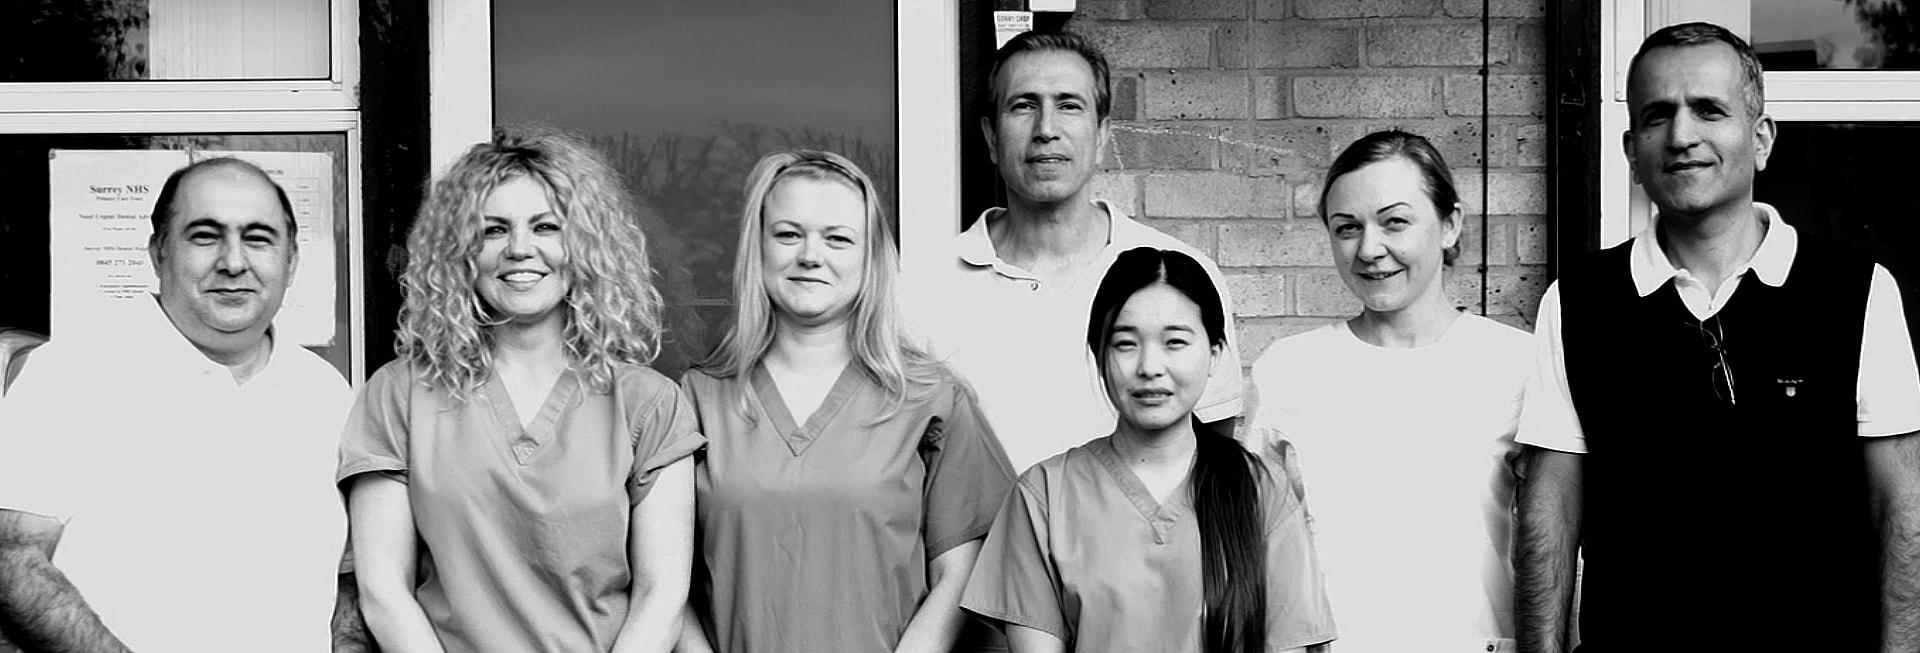 Stanwell Dental team photo